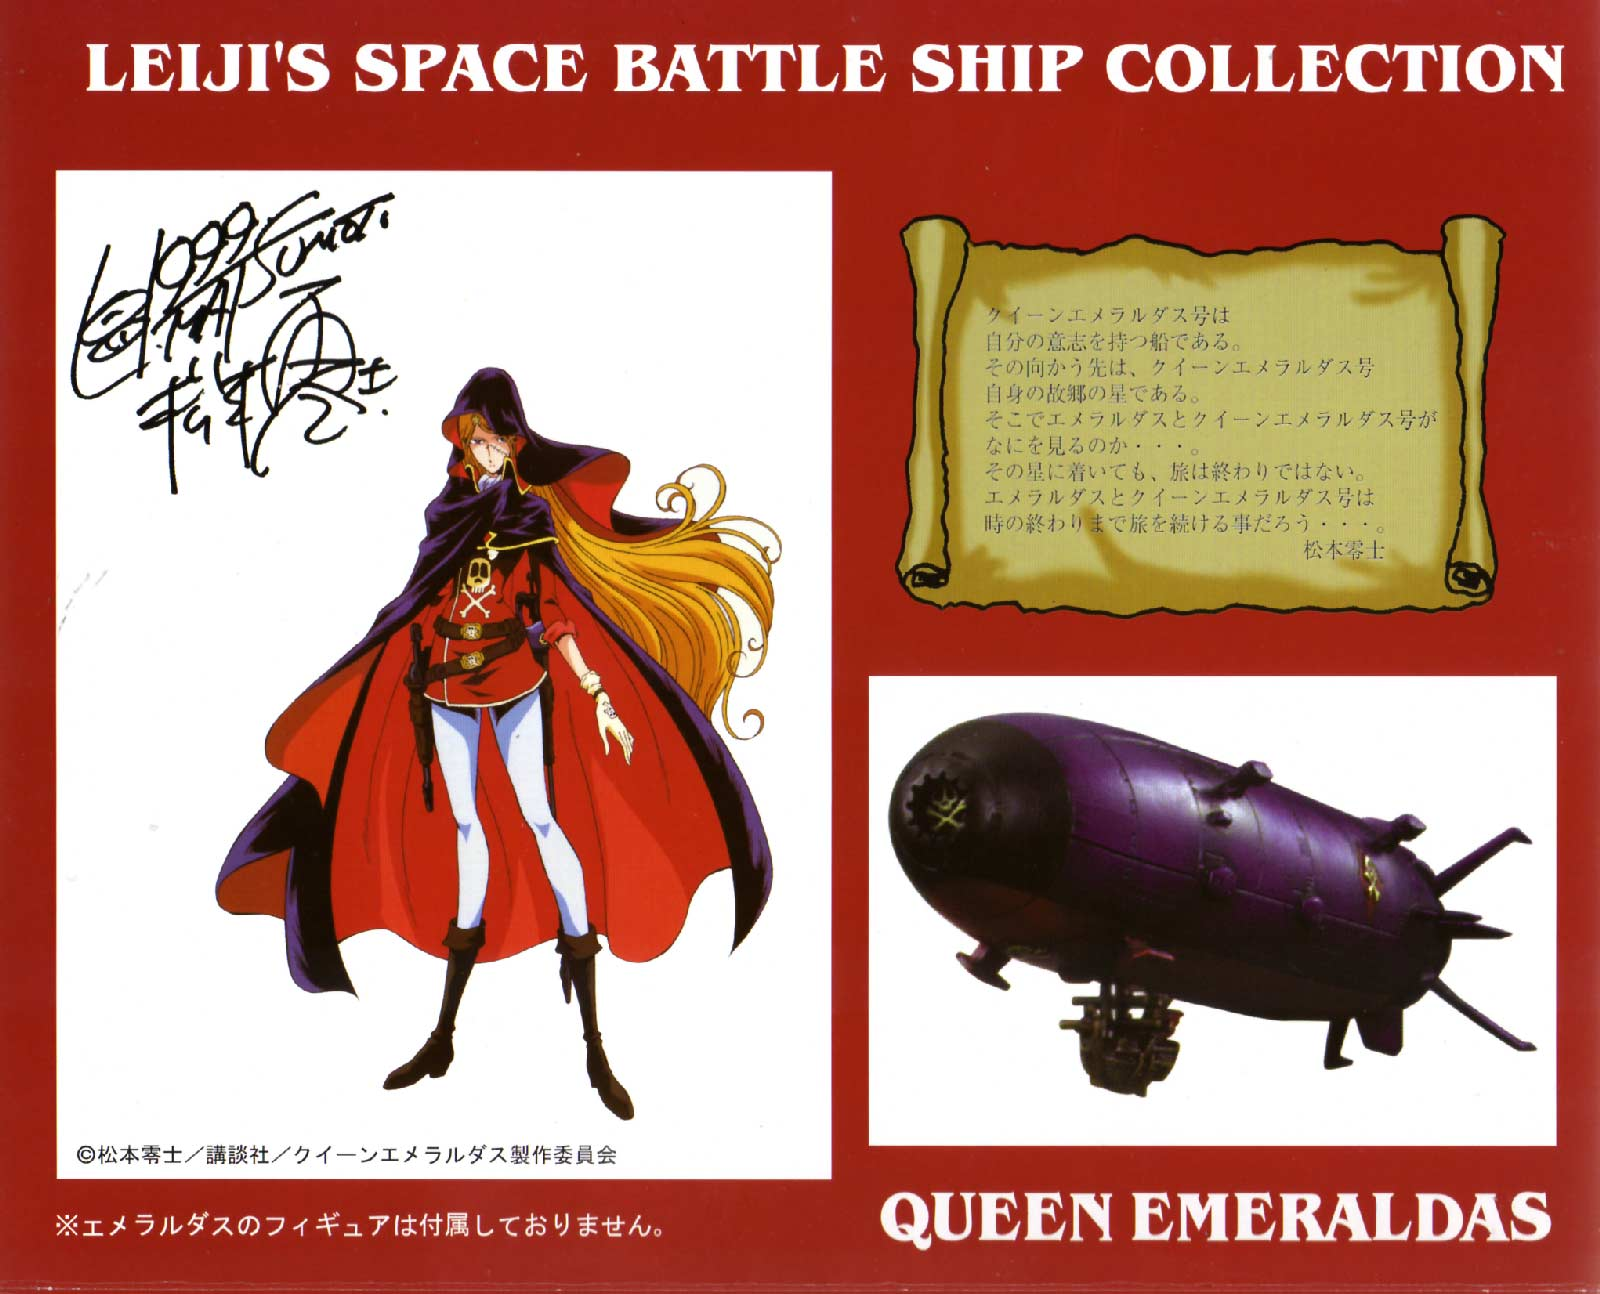 Packaging (couvercle dos) du Queen Emeraldas - Leiji's Space ship collection (jouet)